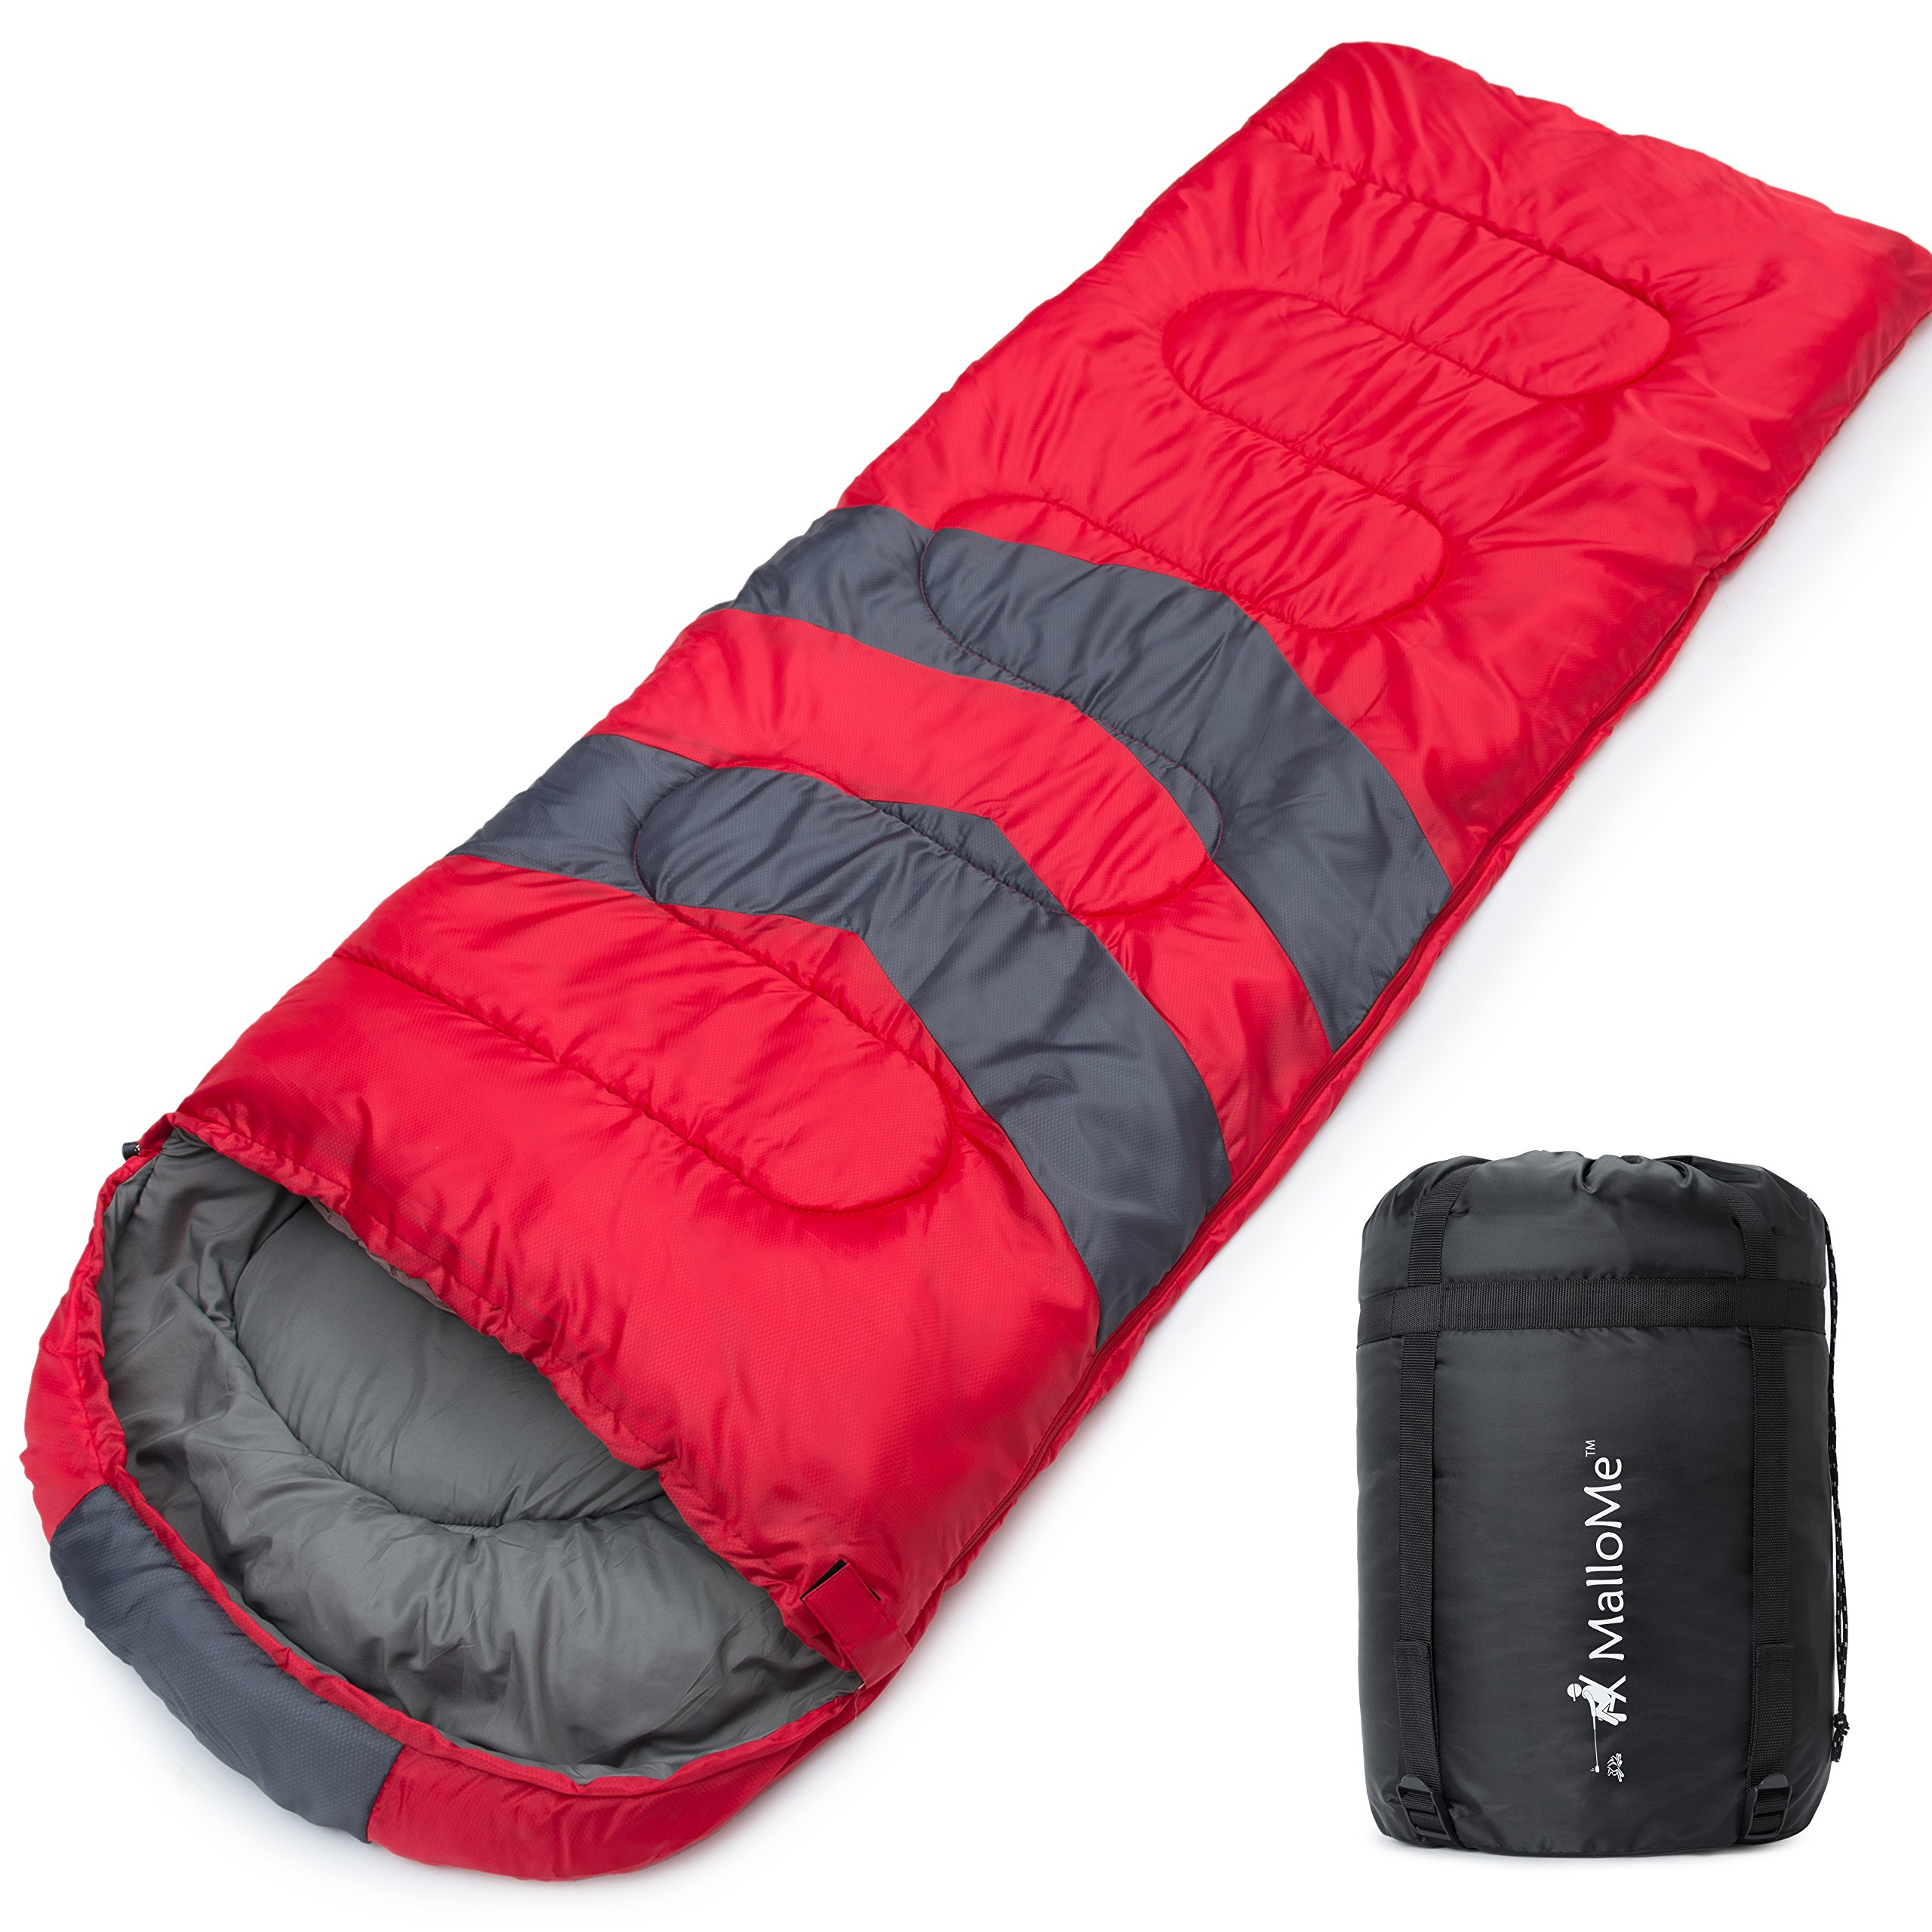 MalloMe Single Camping Sleeping Bag - 4 Season Warm Weather and Winer, Lightweight, Waterproof - Great for Adults & Kids - Excellent Camping Gear Equipment, Traveling, and Outdoor Activities by MalloMe